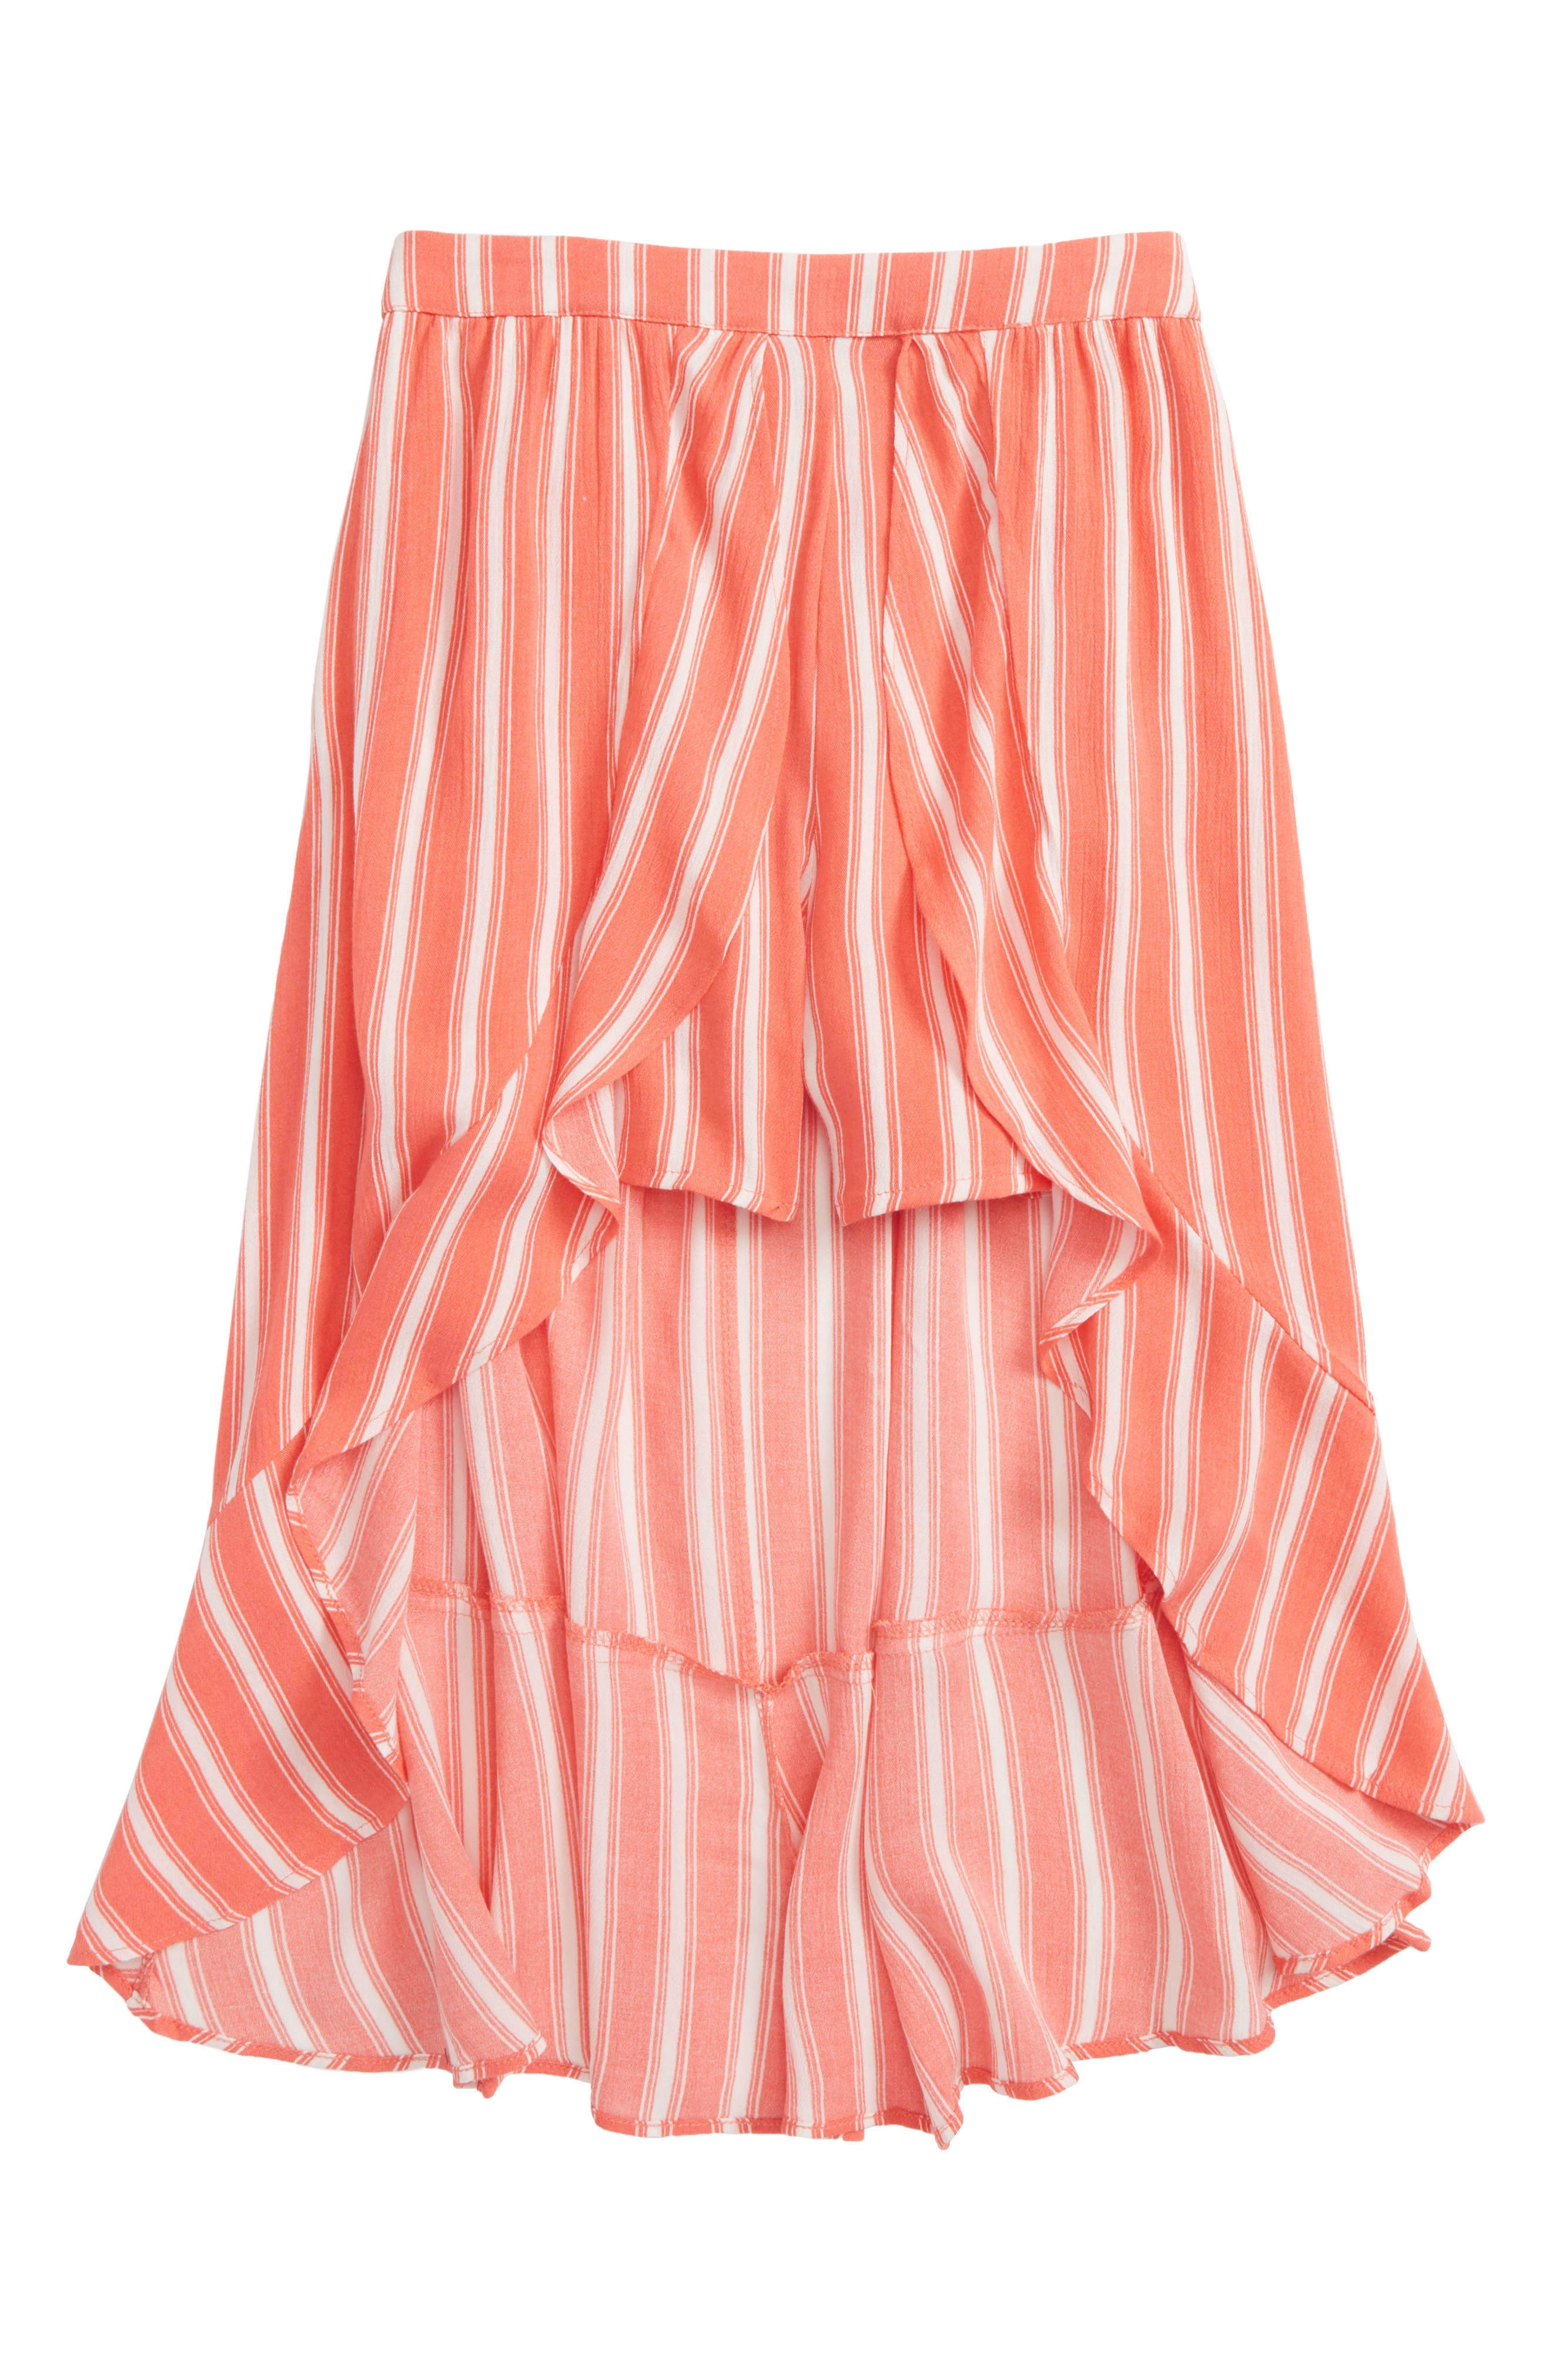 Stripe Walk Through Skirt,                             Main thumbnail 1, color,                             Coral/ Ivory